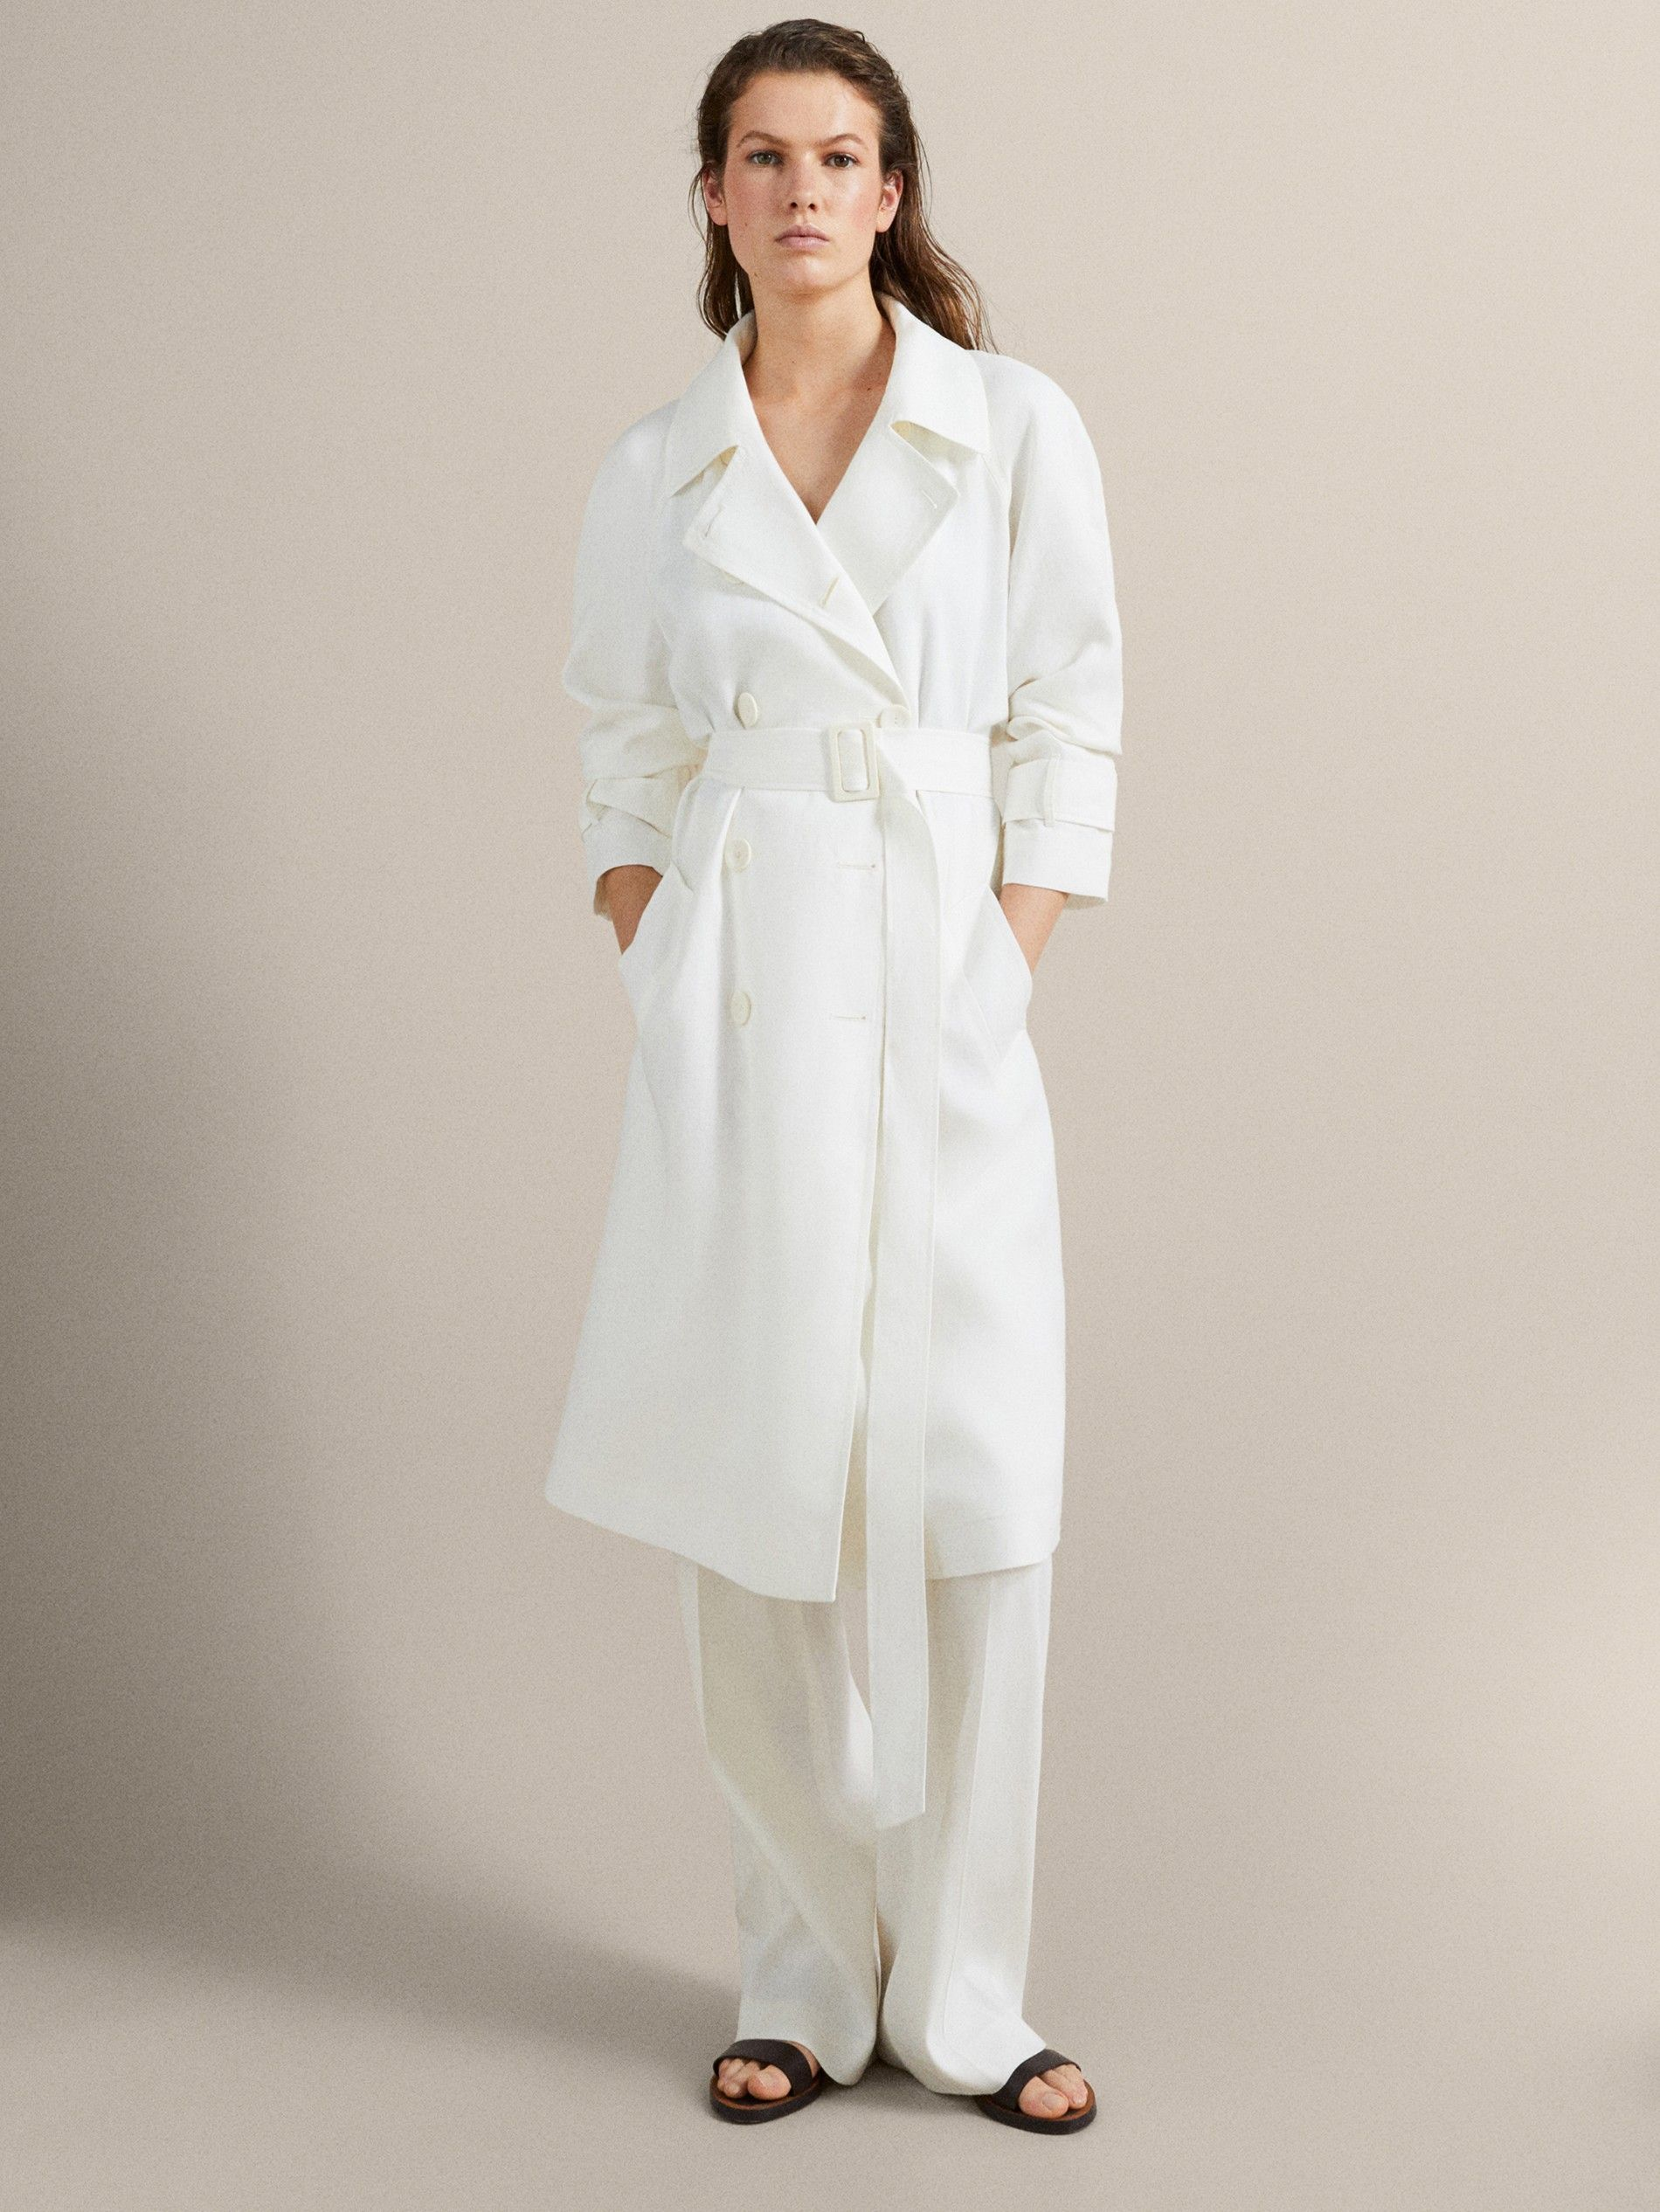 149 100 Linen Trench Coat With Belt Women Massimo Dutti Trench Coat Womens Spring Jackets Coat